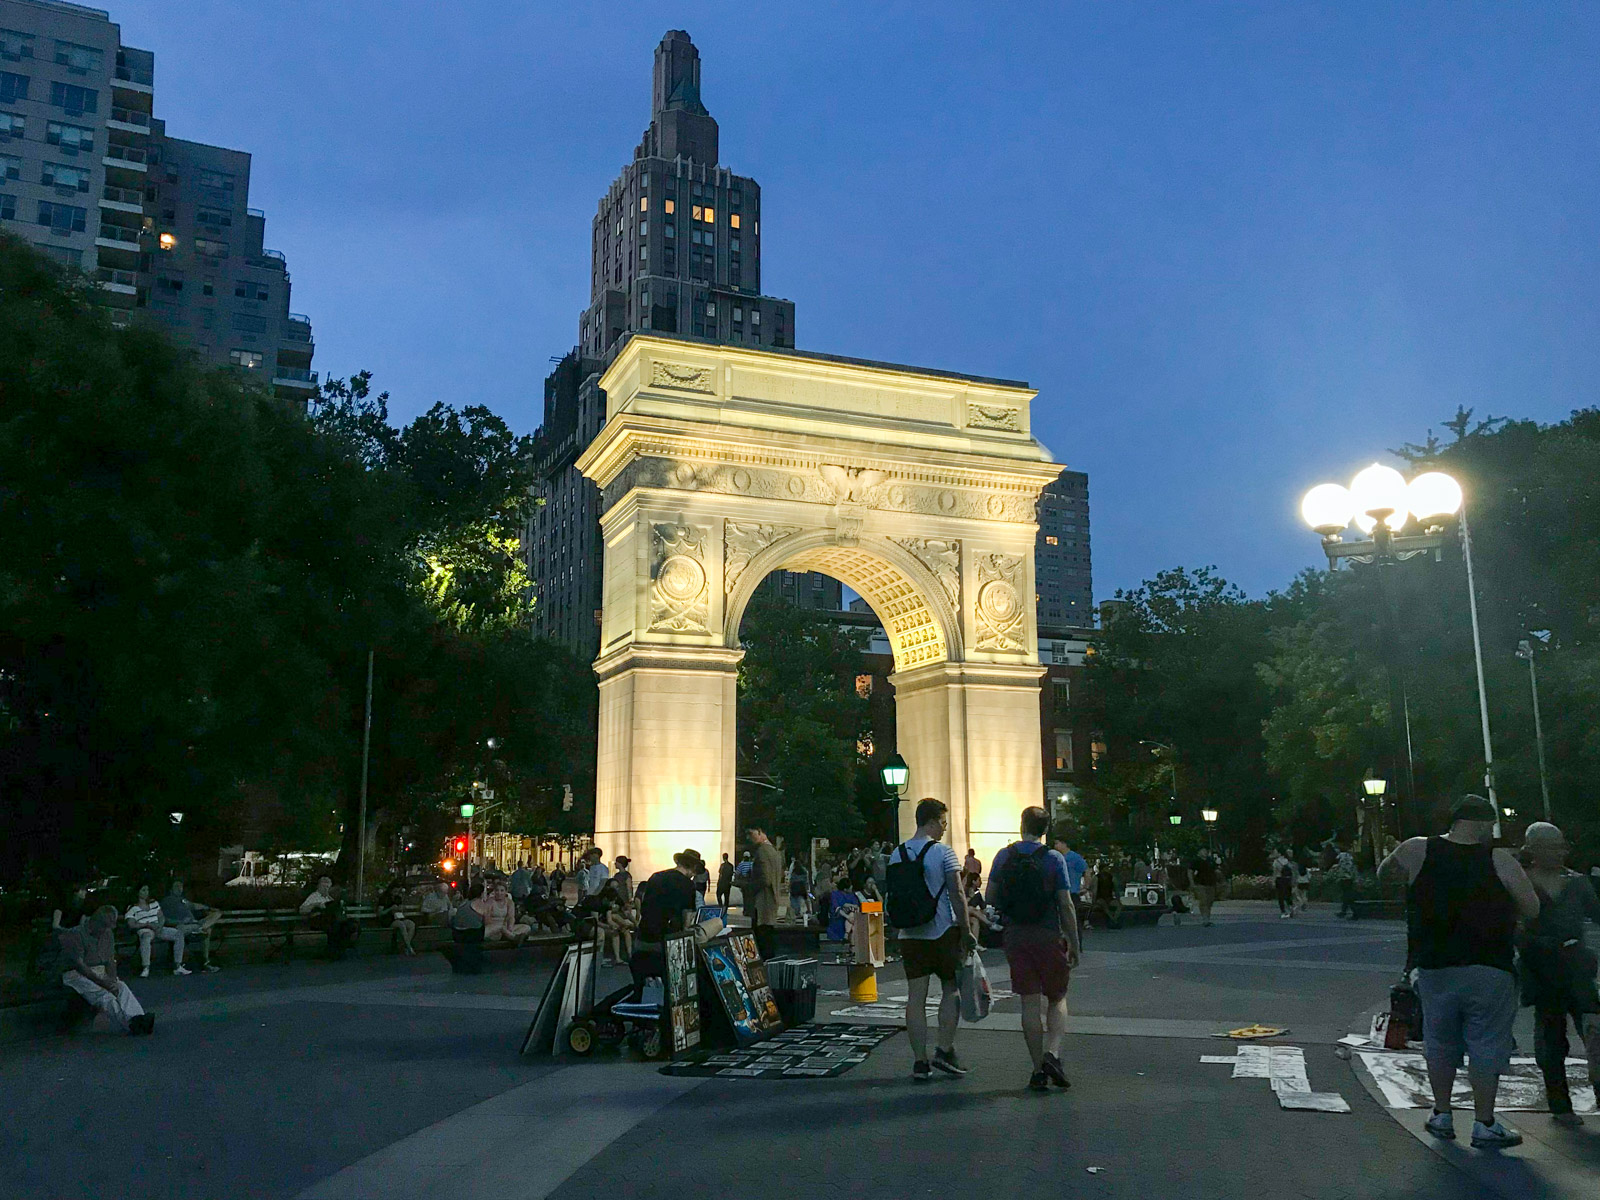 Washington Square Arch, a tall arch structure, lit up in the evening. In the foreground, people are sharing their artwork with it laid out on the ground